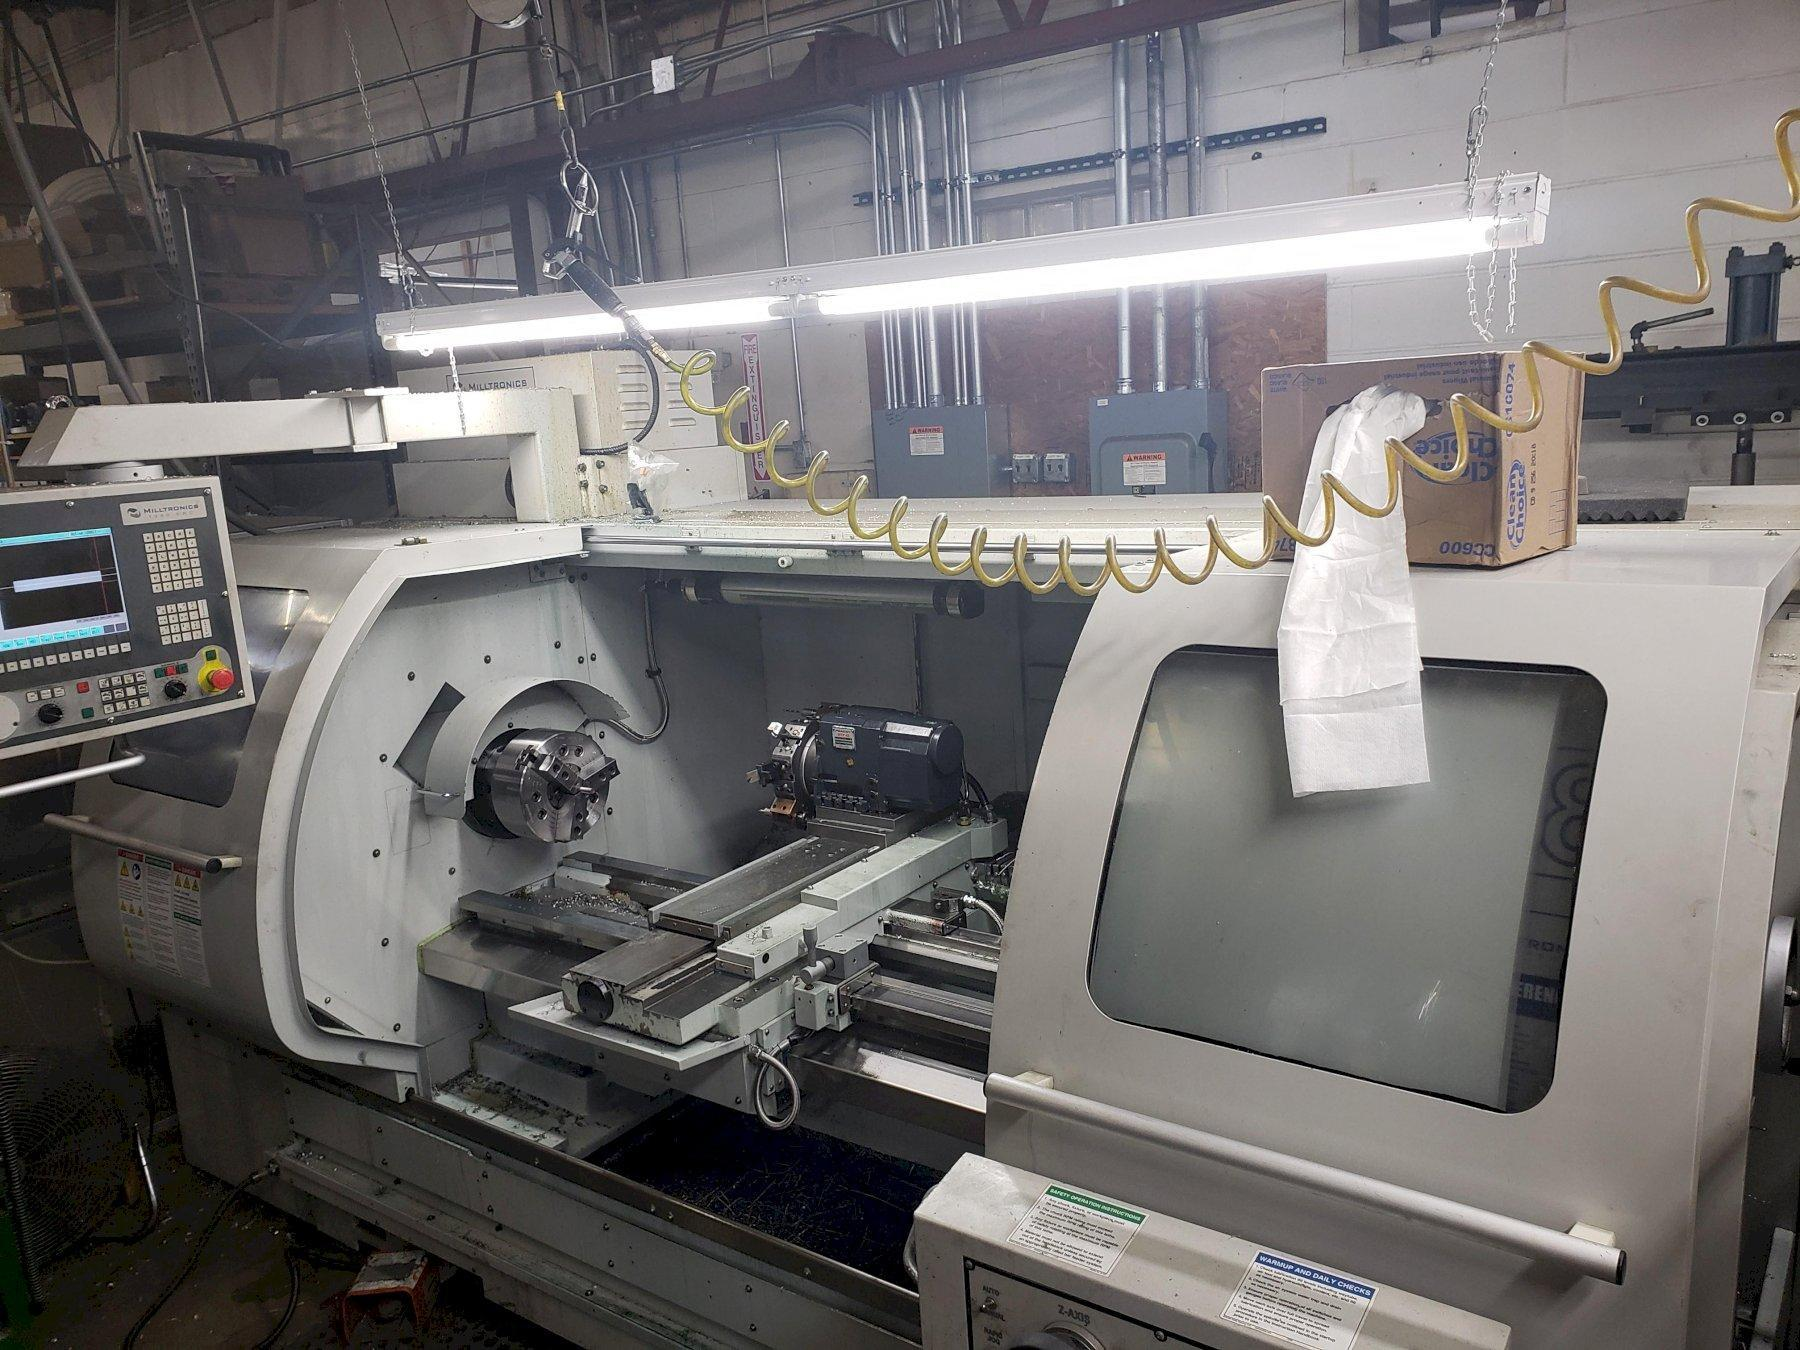 Milltronics ML18/60 CNC 2-Axis Combination Lathe, S/N 11882, New 2012